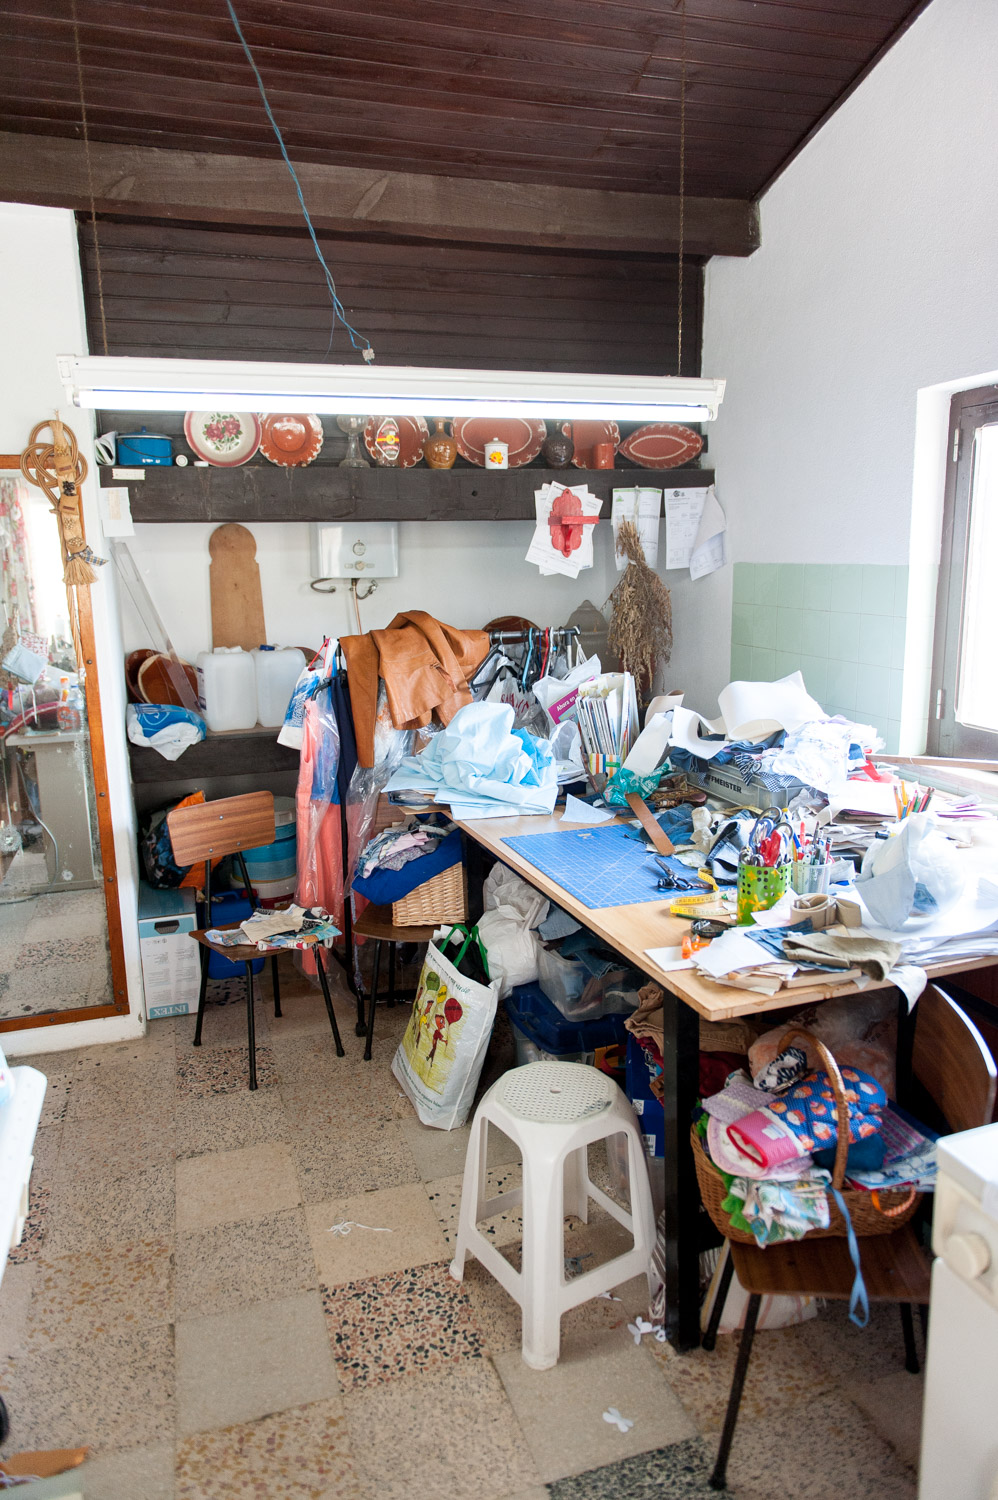 atelier-costura-francisca-pinto-2.jpg